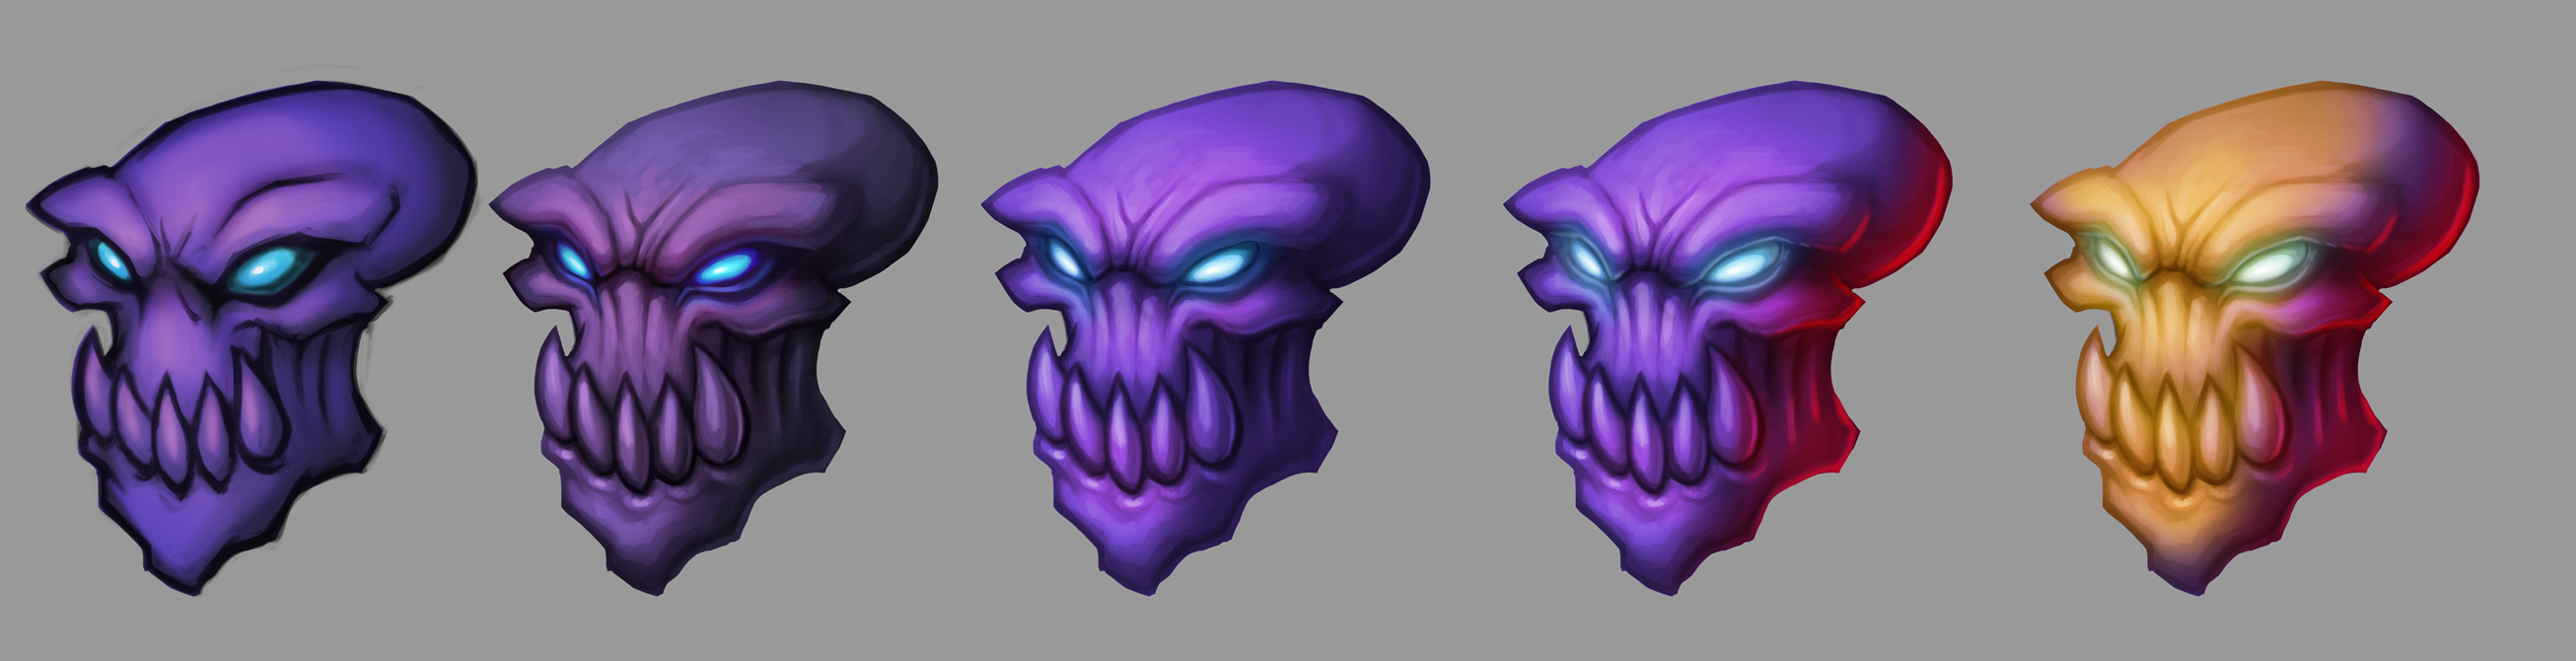 voidheads.png